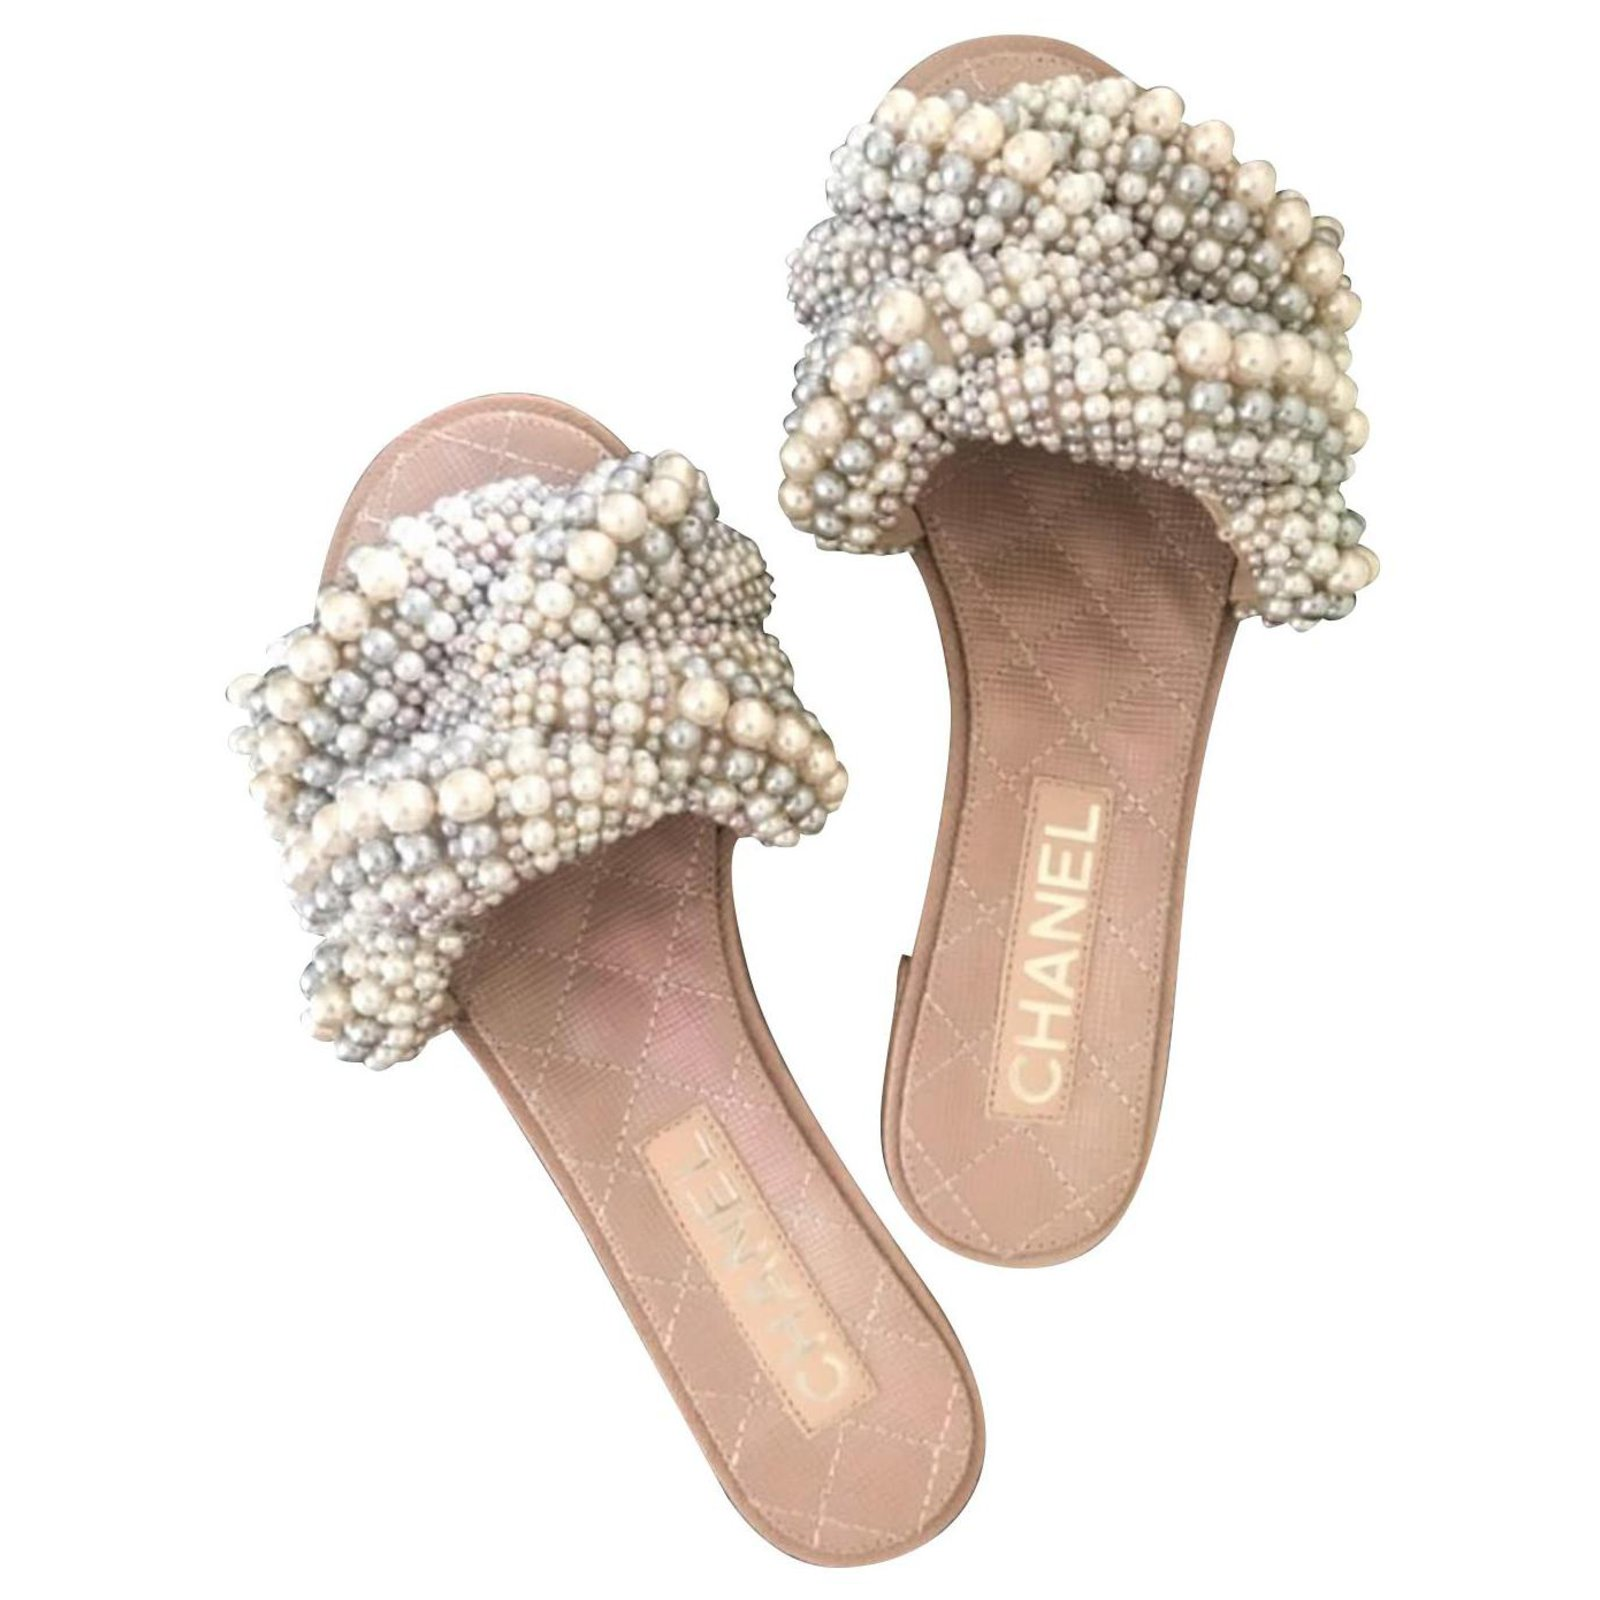 Chanel Chanel Pearl Slides Slippers Sandals Eu 35 5 Sandals Leather Beige Ref 125260 Joli Closet